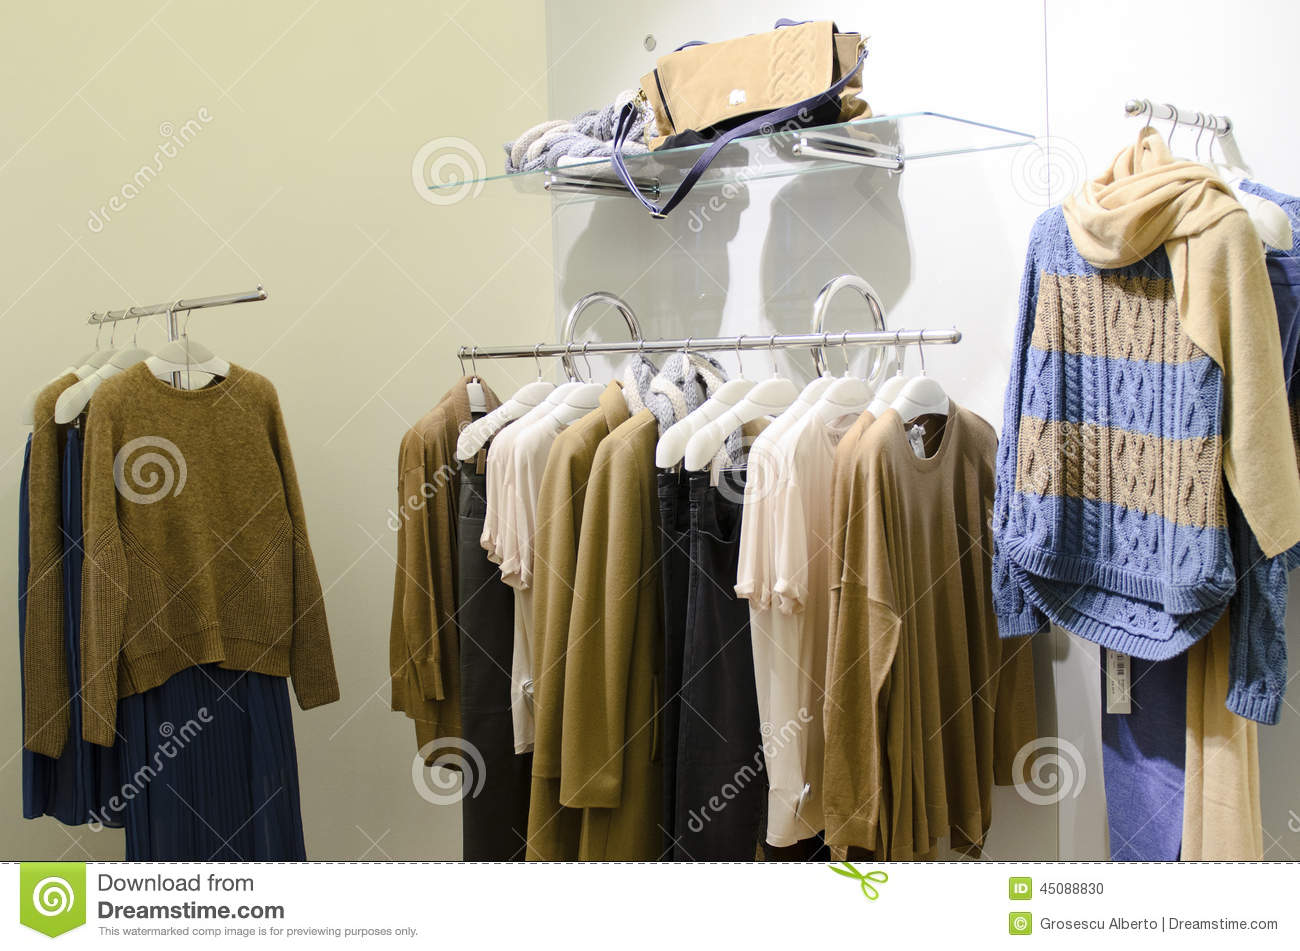 The collection clothing store